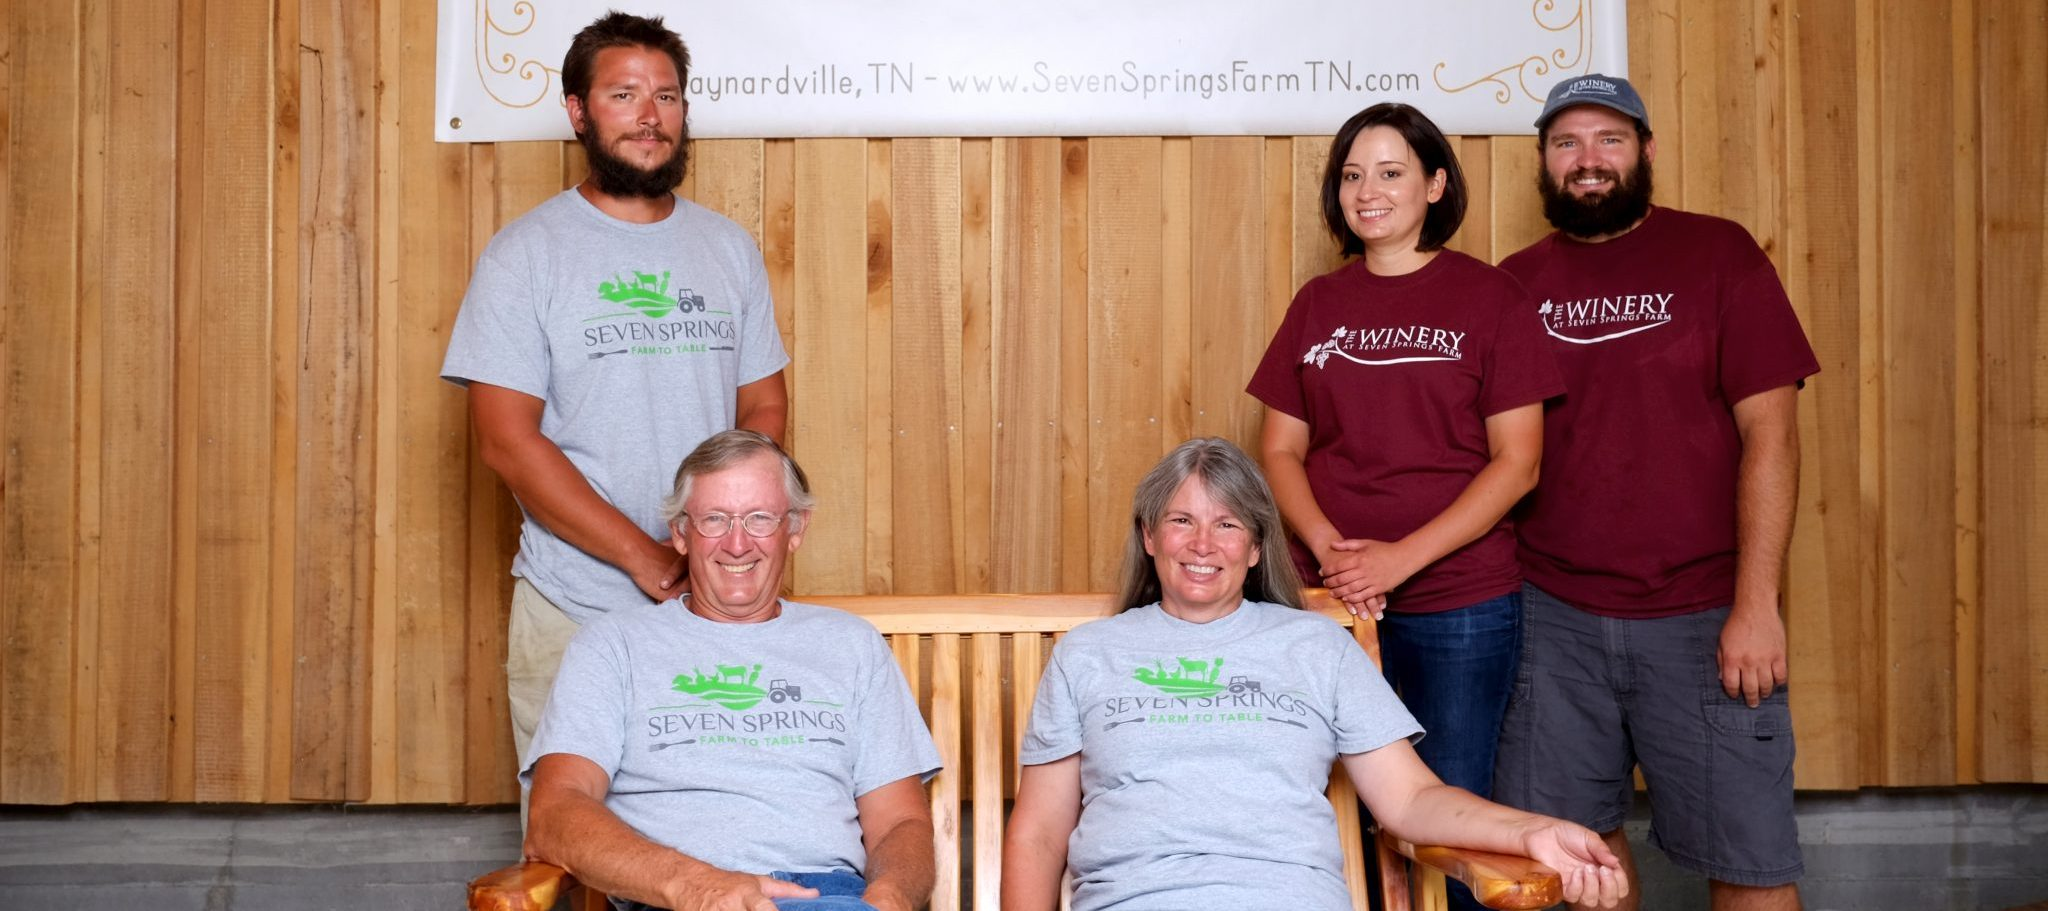 Meet the Family Behind East Tennessee's Premier Wine and Vineyard Location